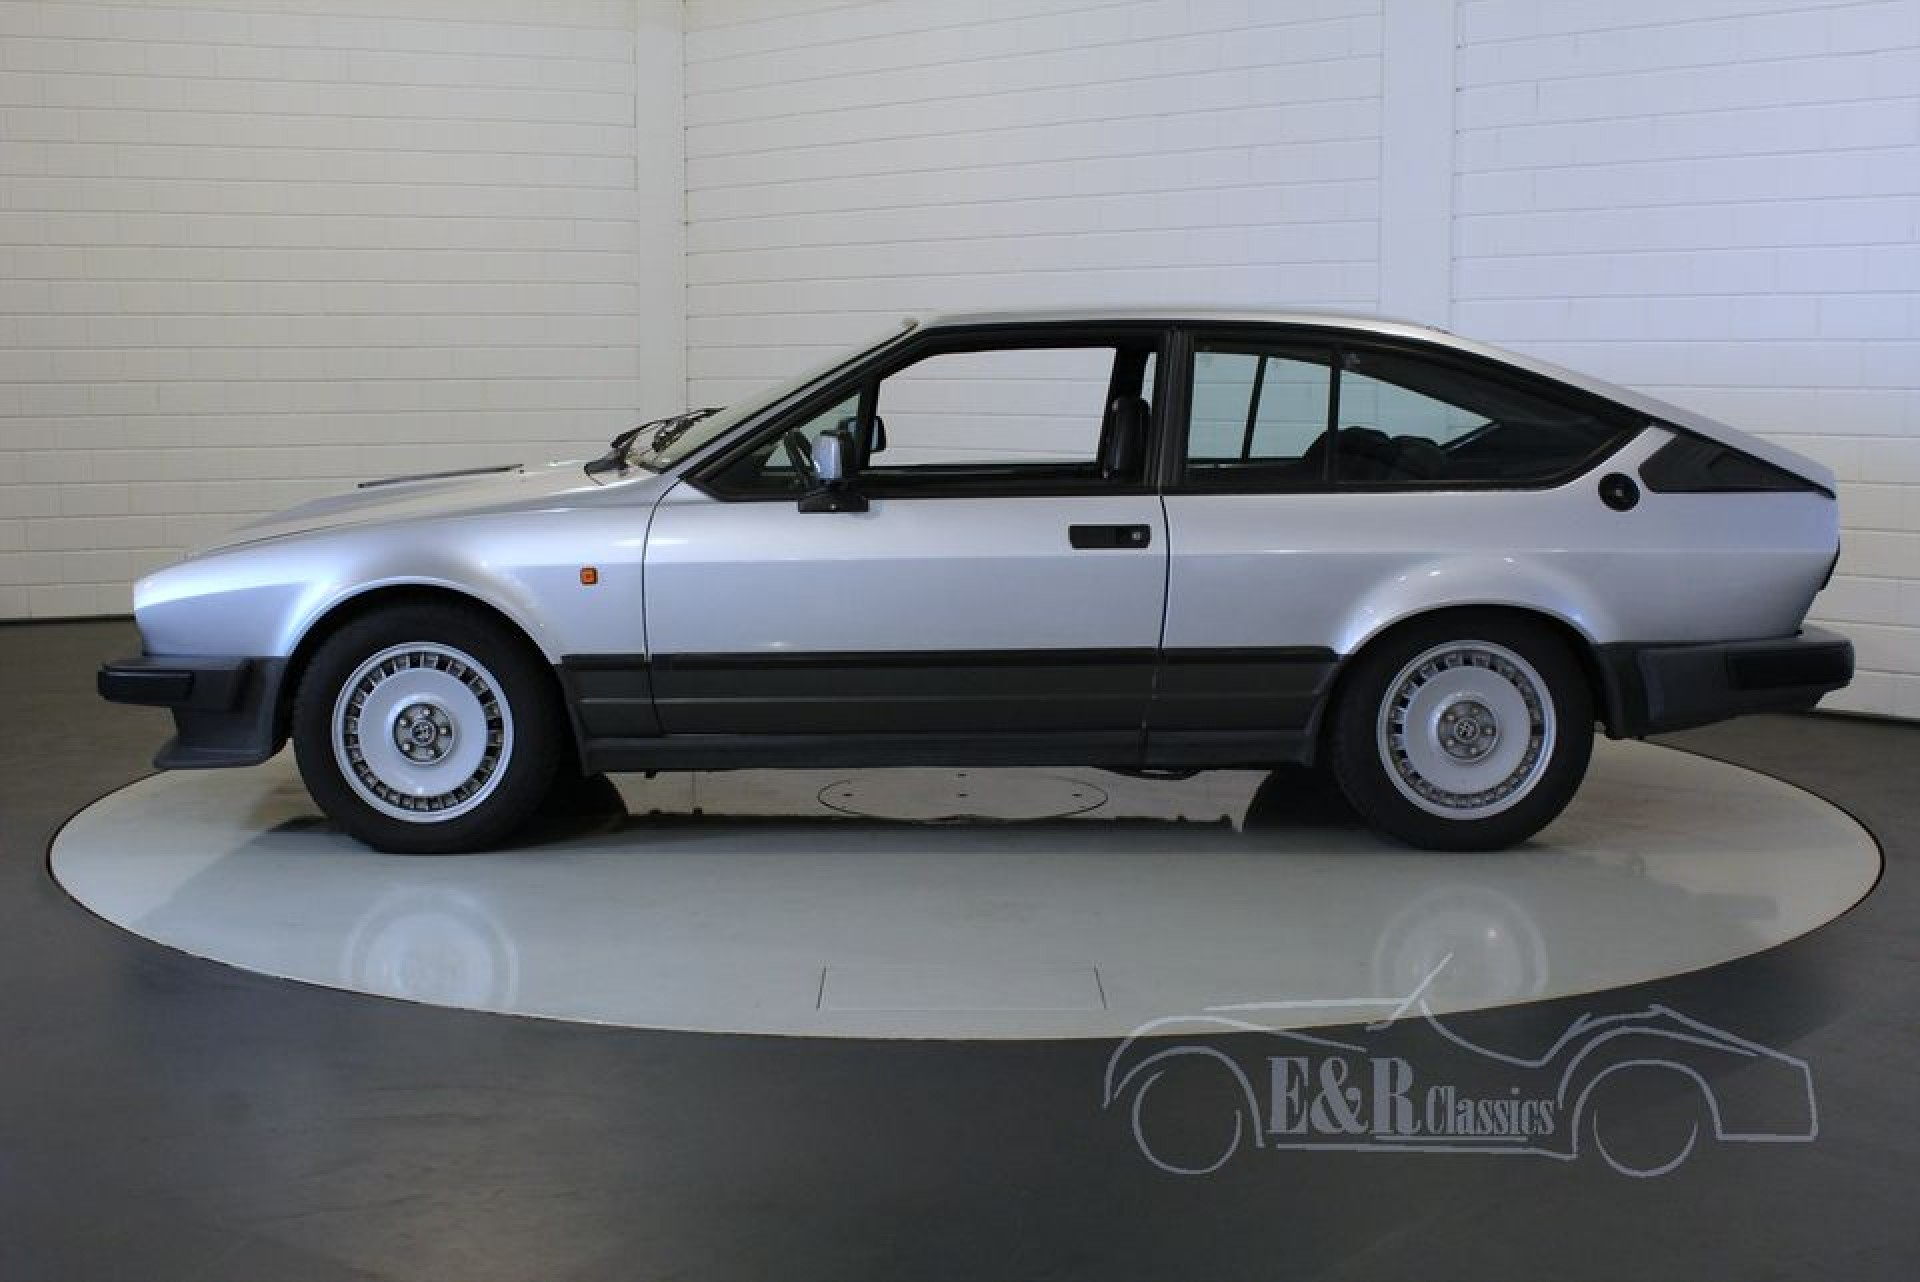 alfa romeo gtv6 savali 1985 te koop bij erclassics. Black Bedroom Furniture Sets. Home Design Ideas